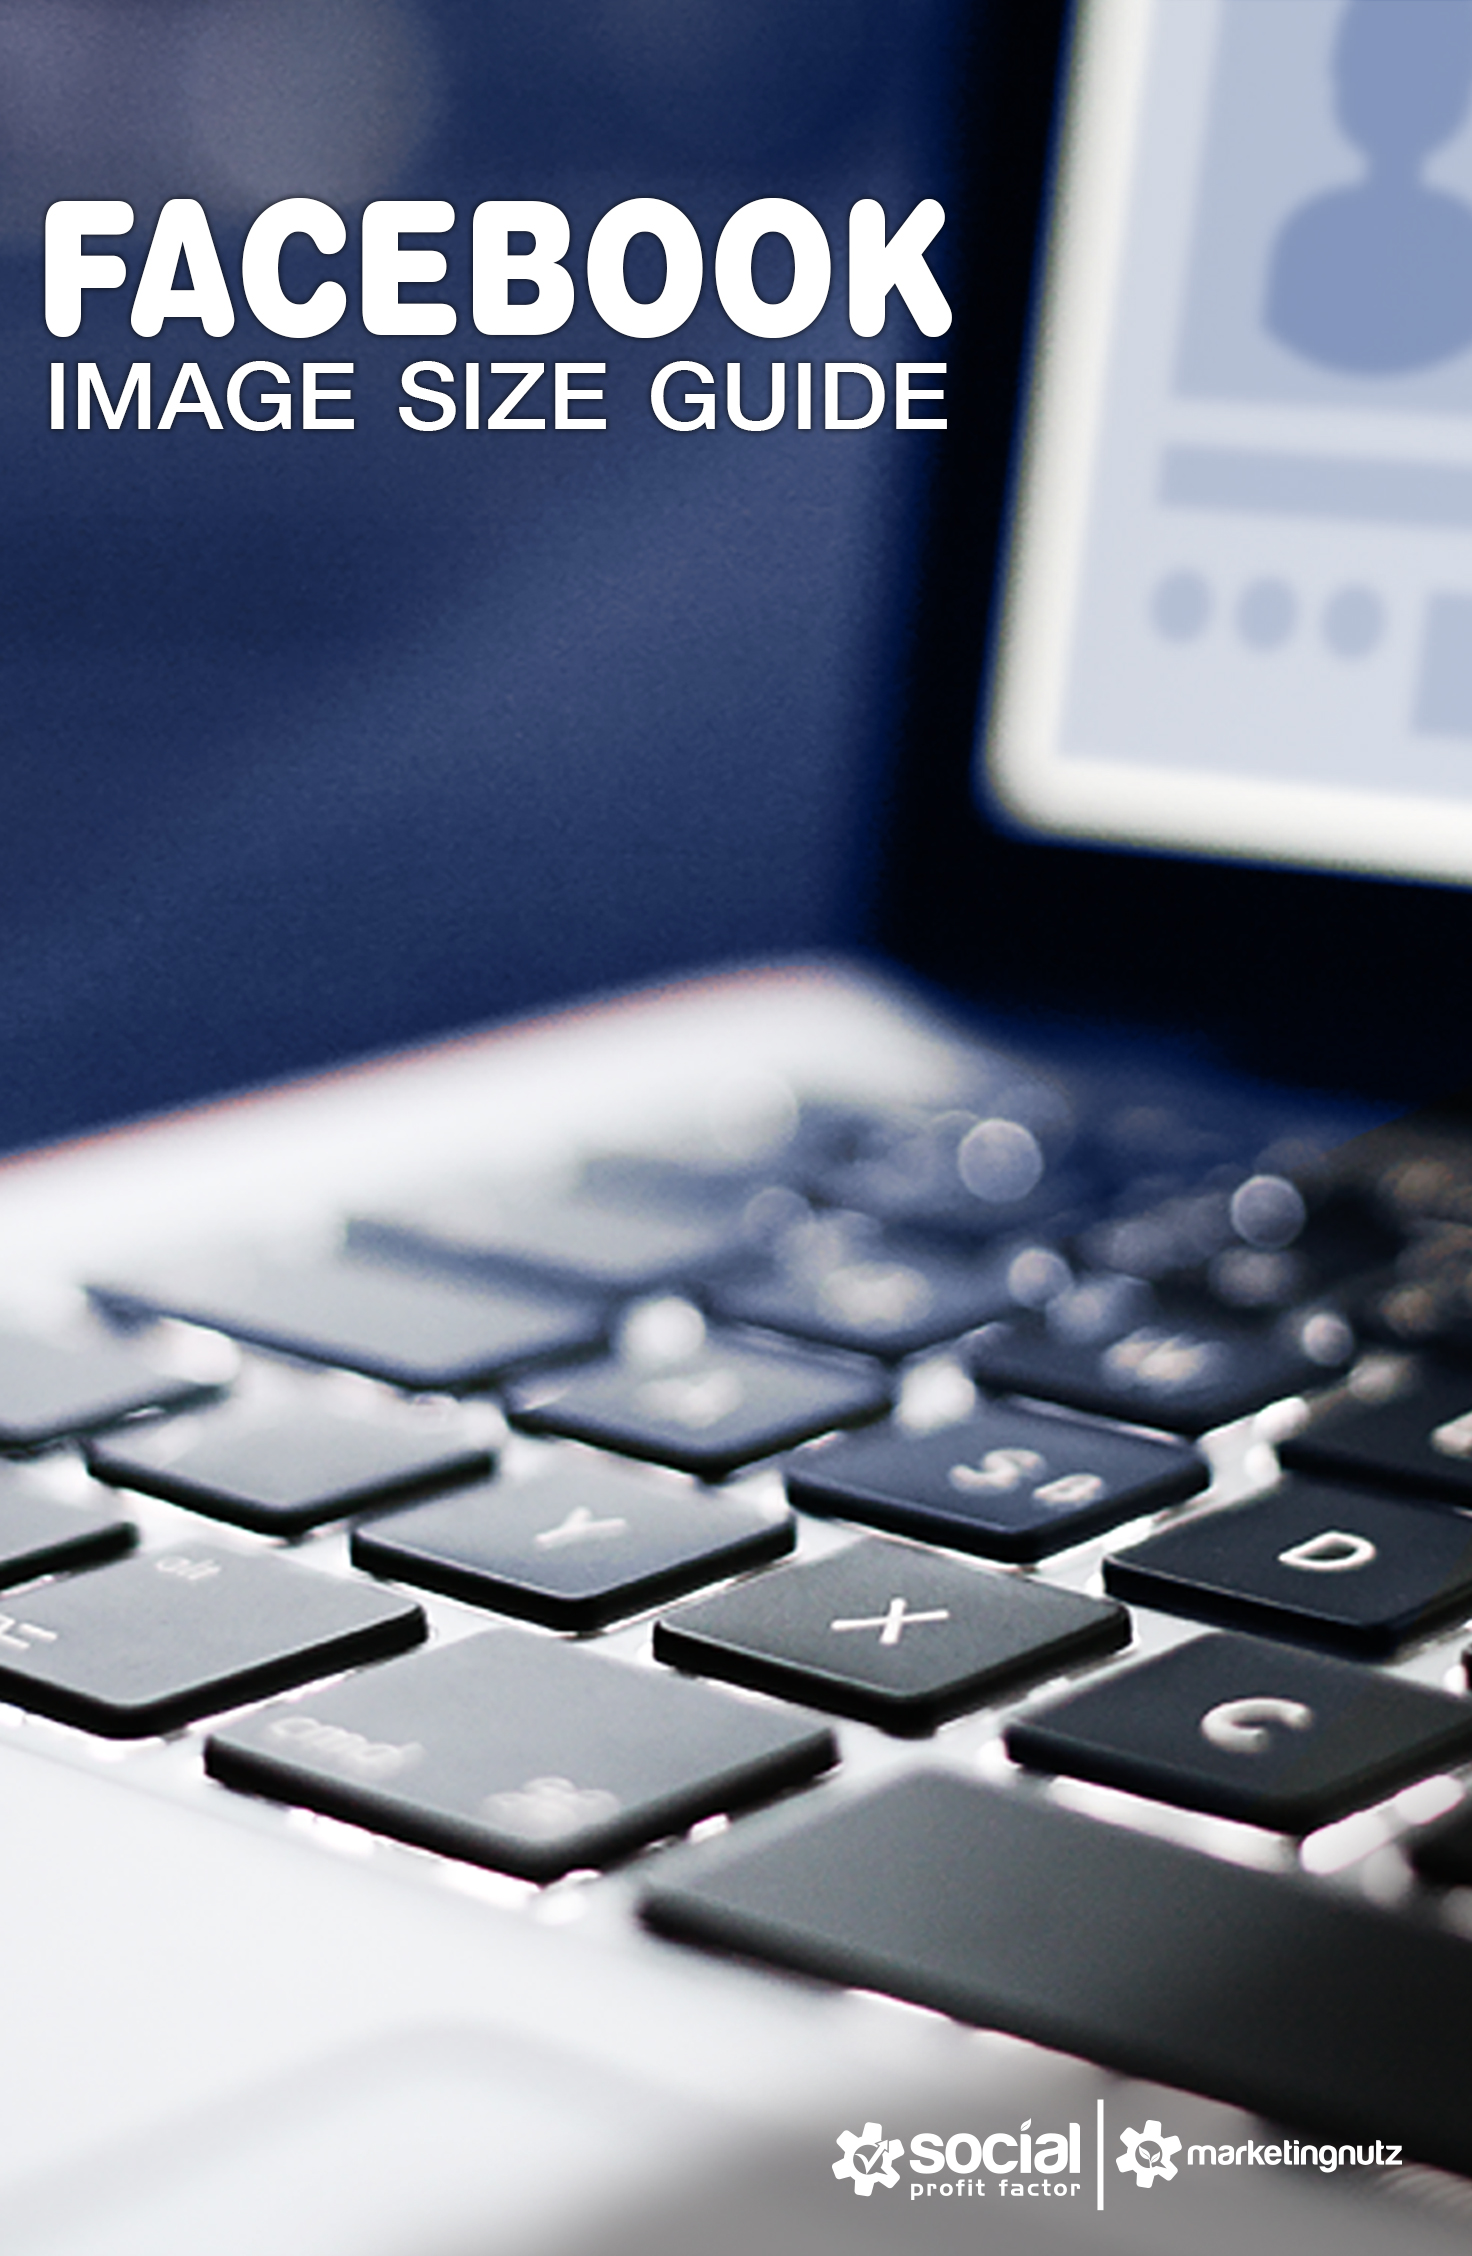 You Need This Facebook Image Size Guide And Templates To